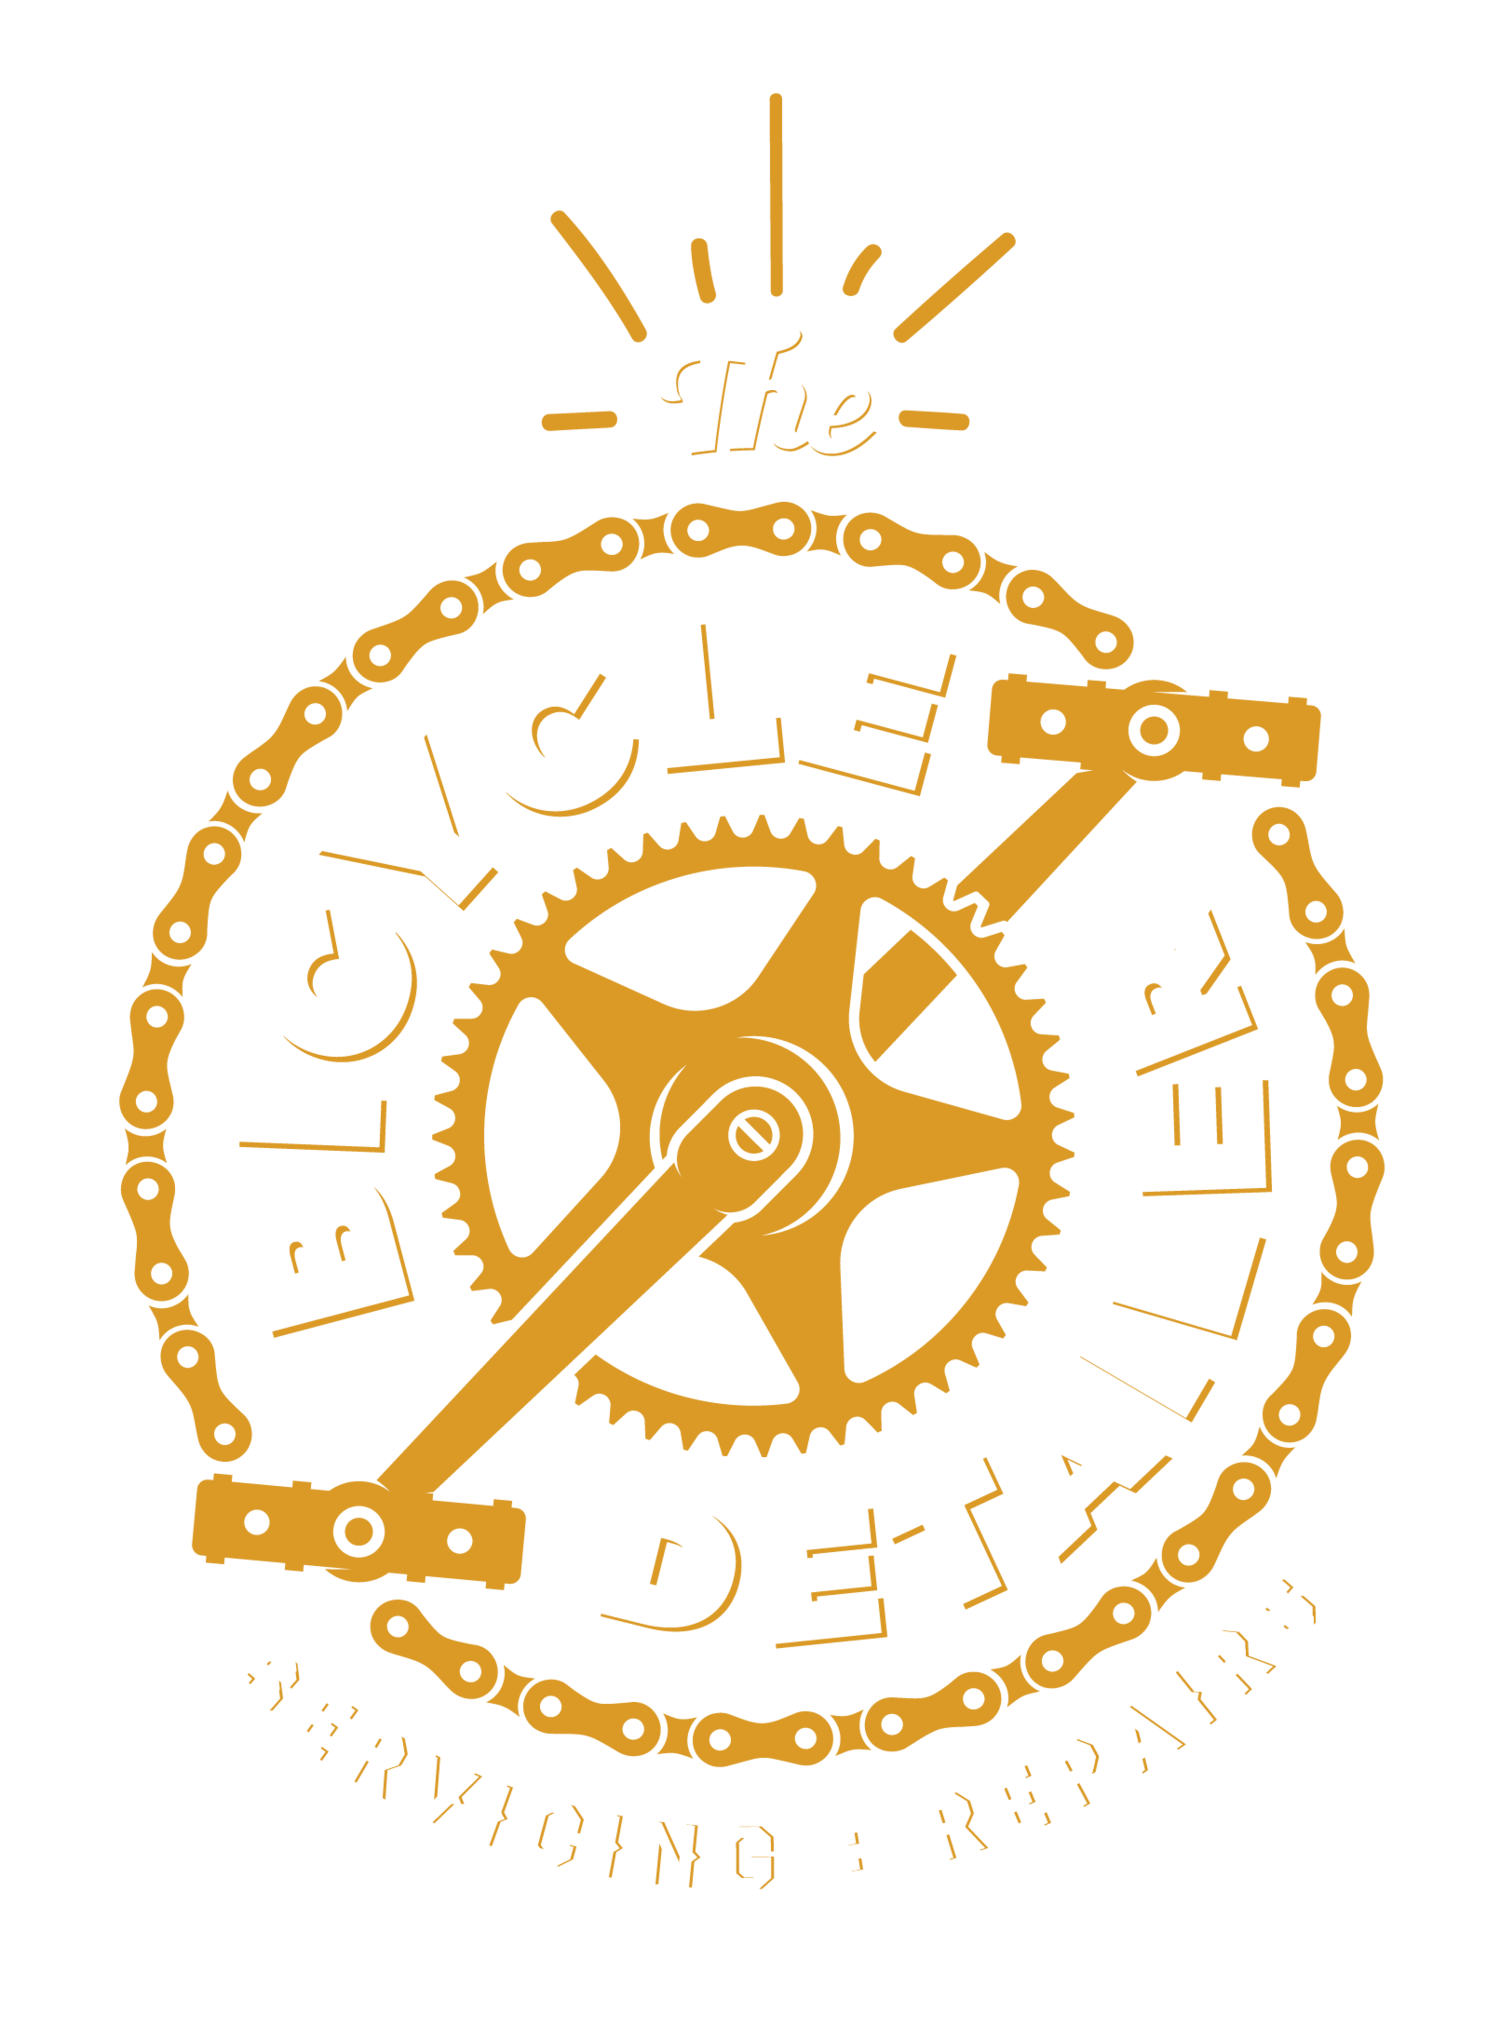 THE BICYCLE DETAILER